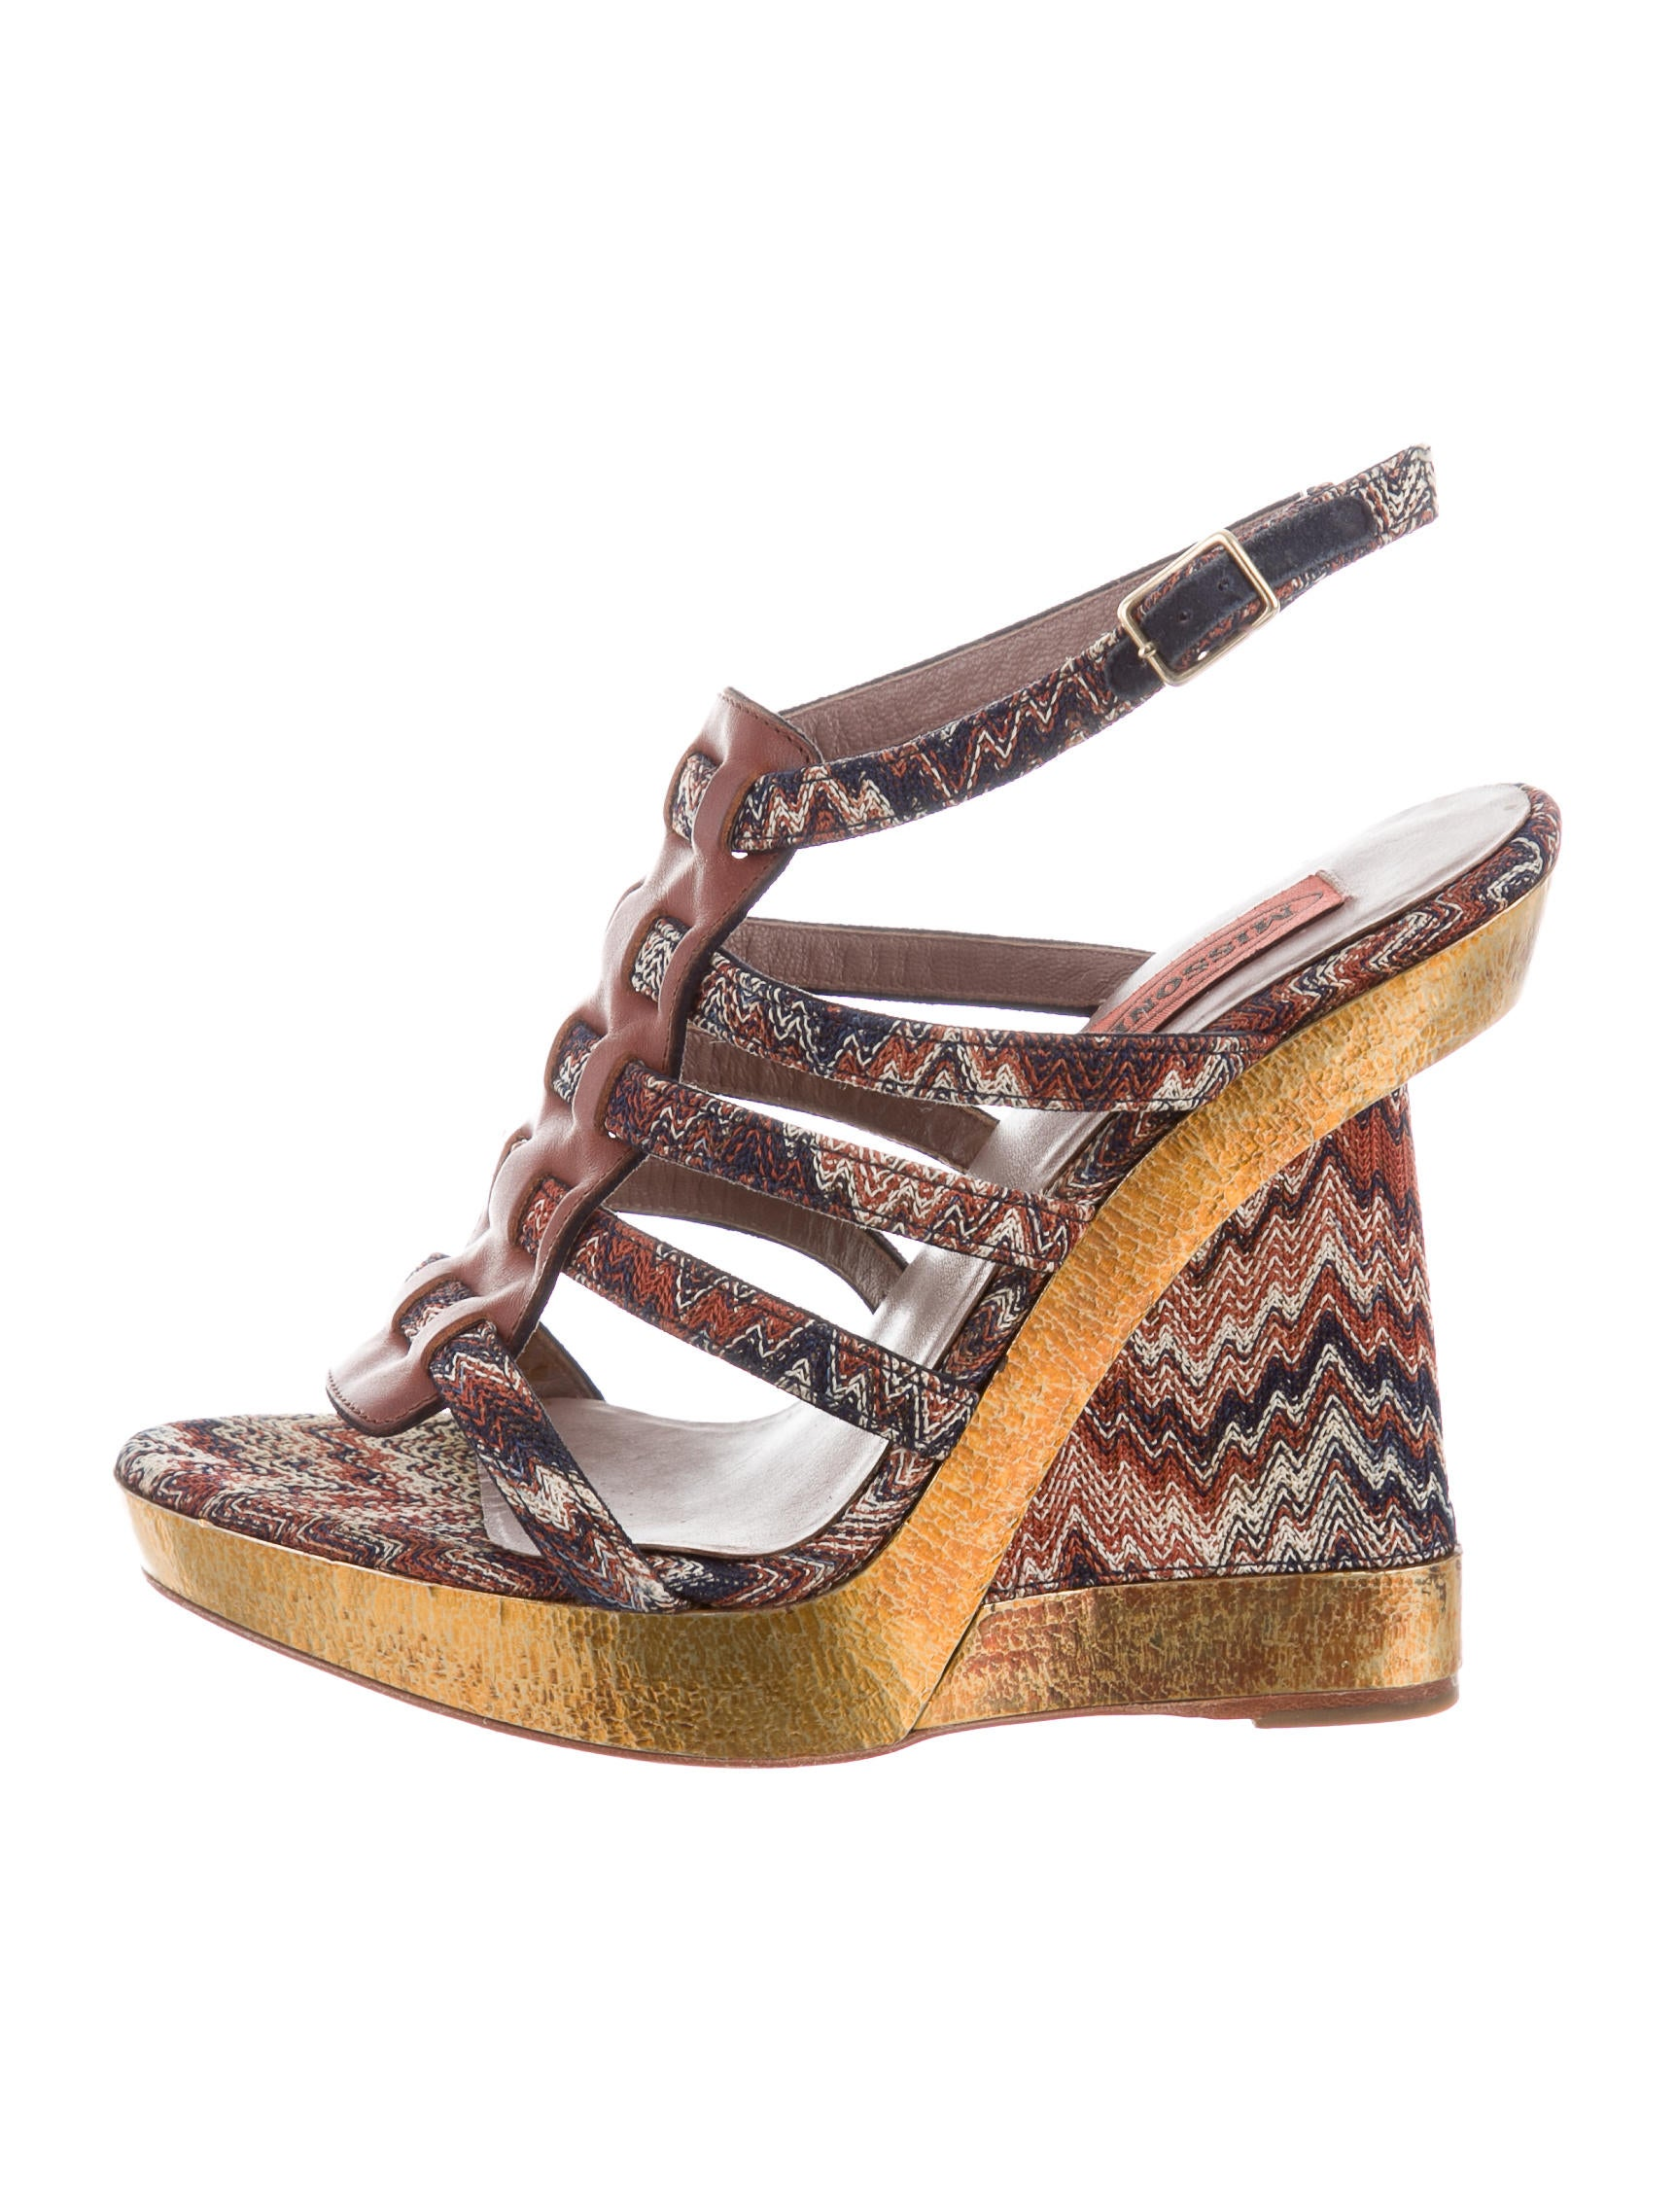 Missoni Embellished Wedged Sandals factory outlet cheap price RnVF5LJjE3